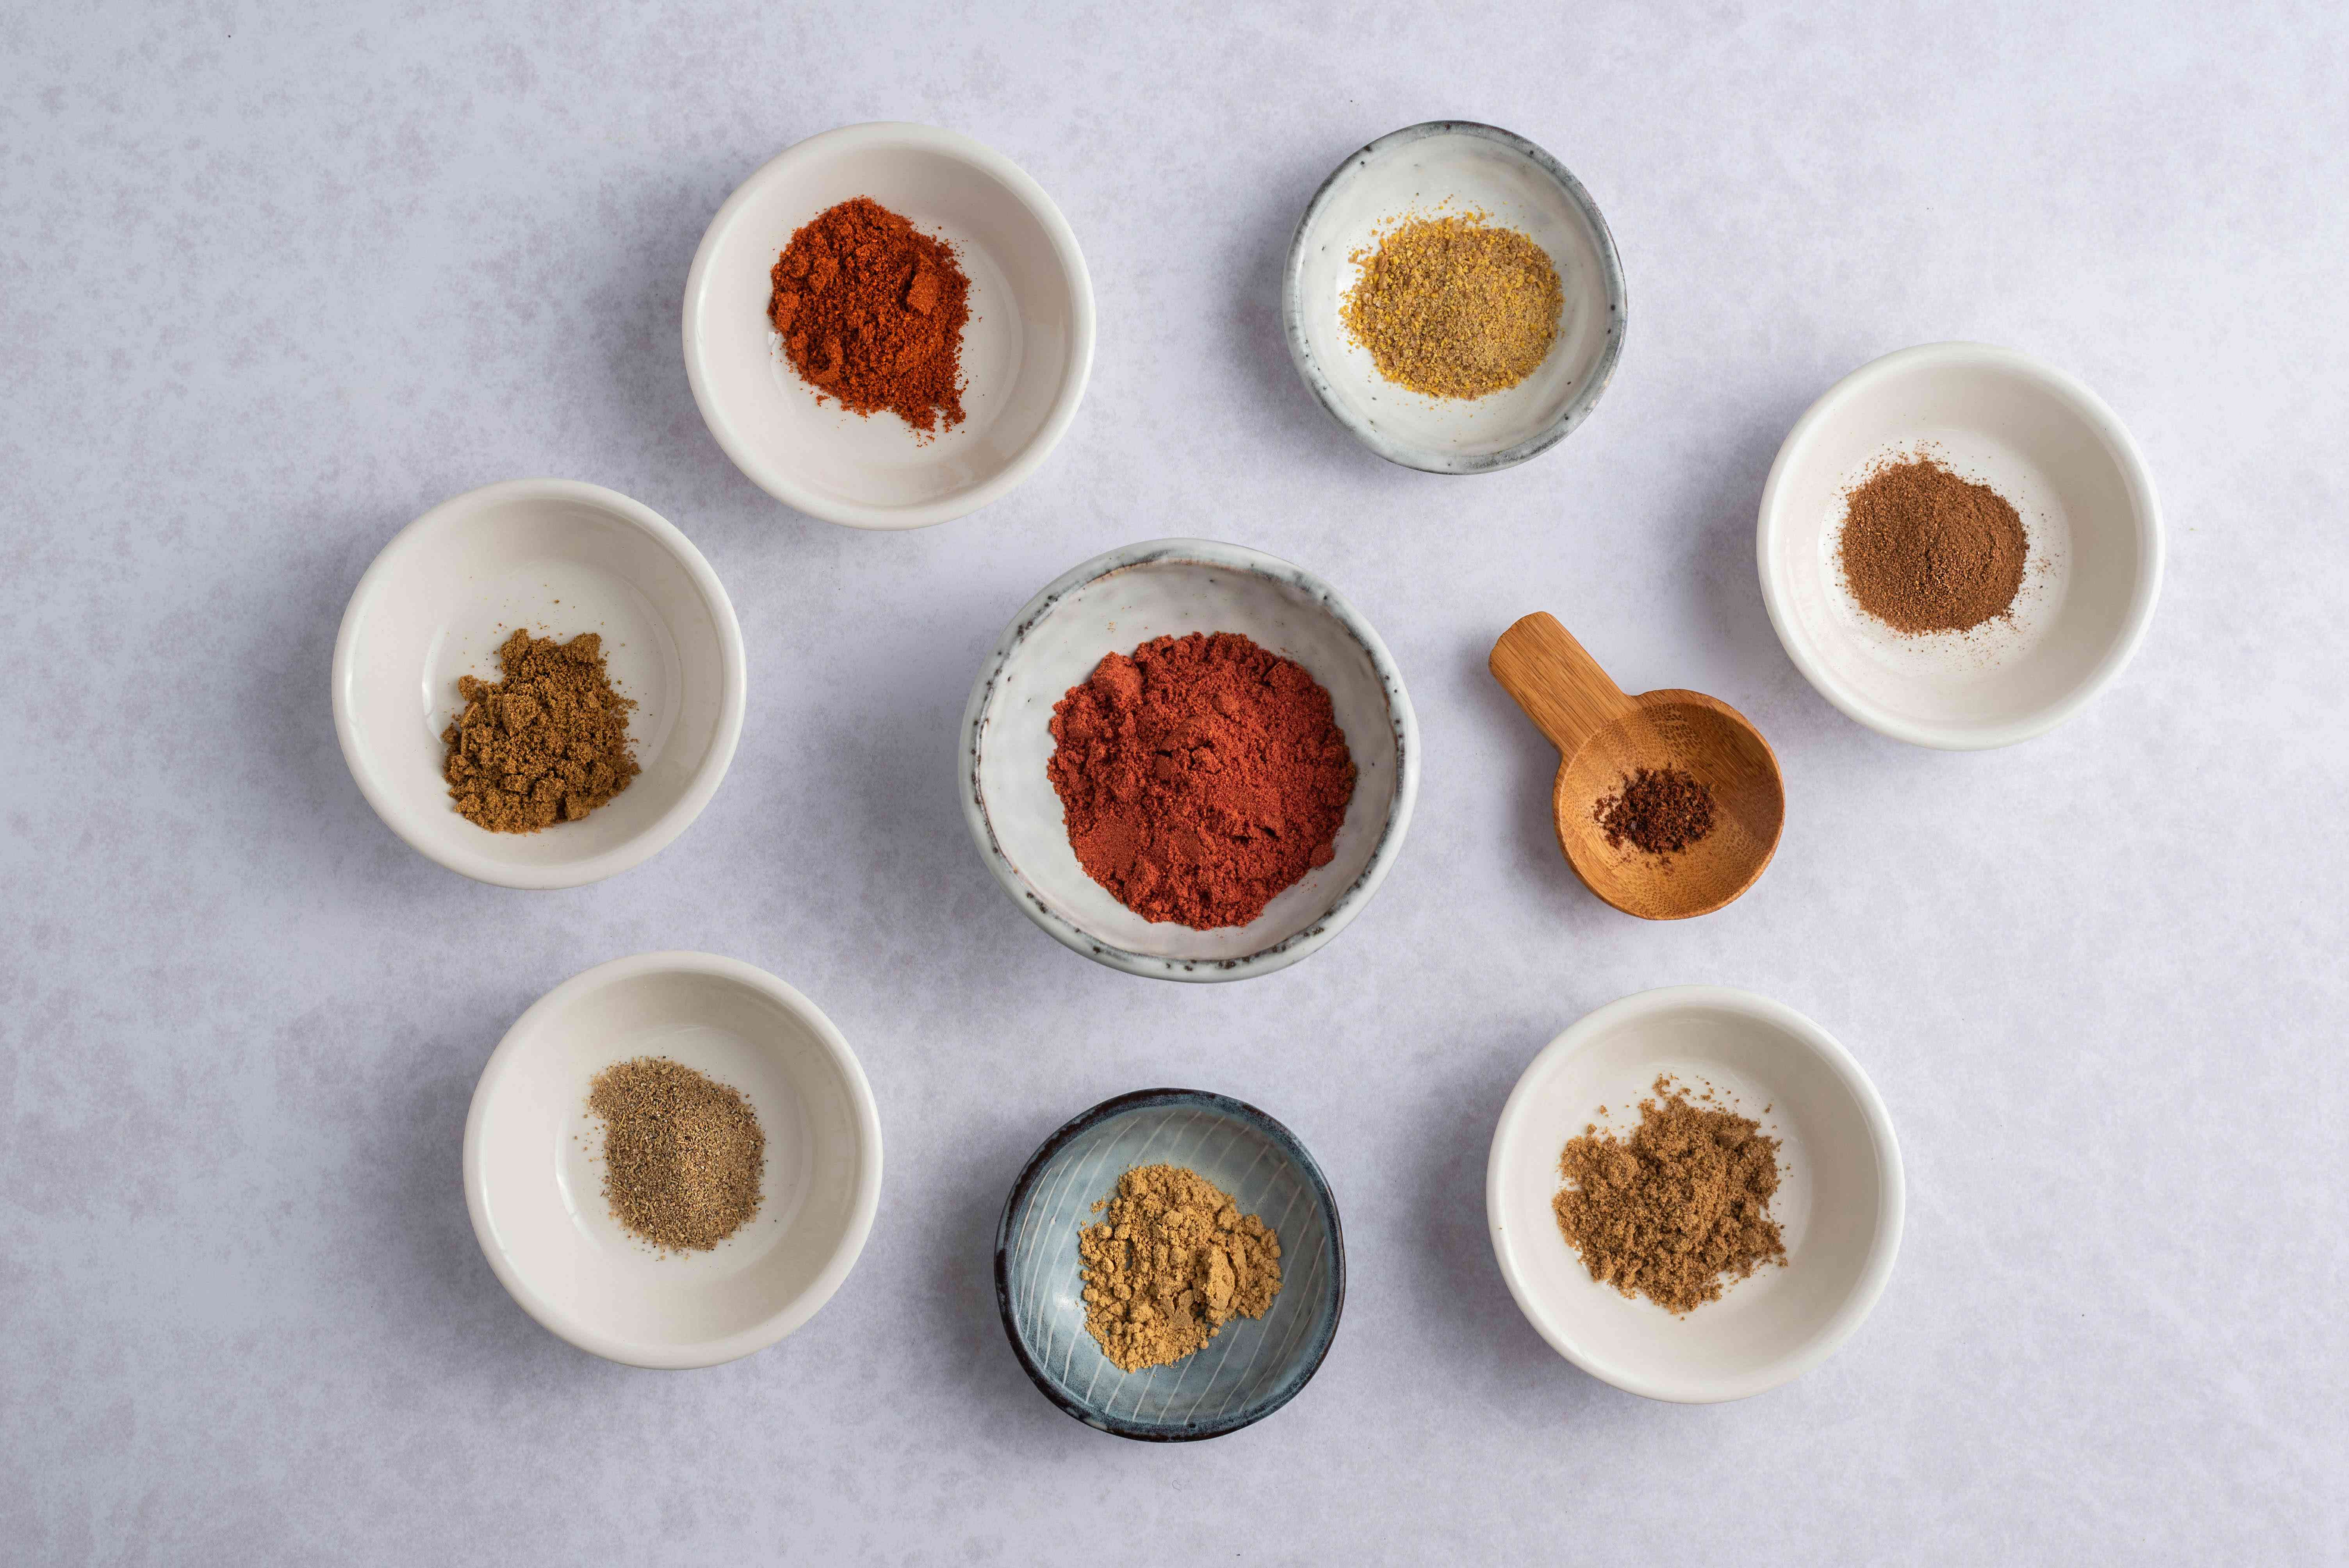 Ingredients for durban curry masala